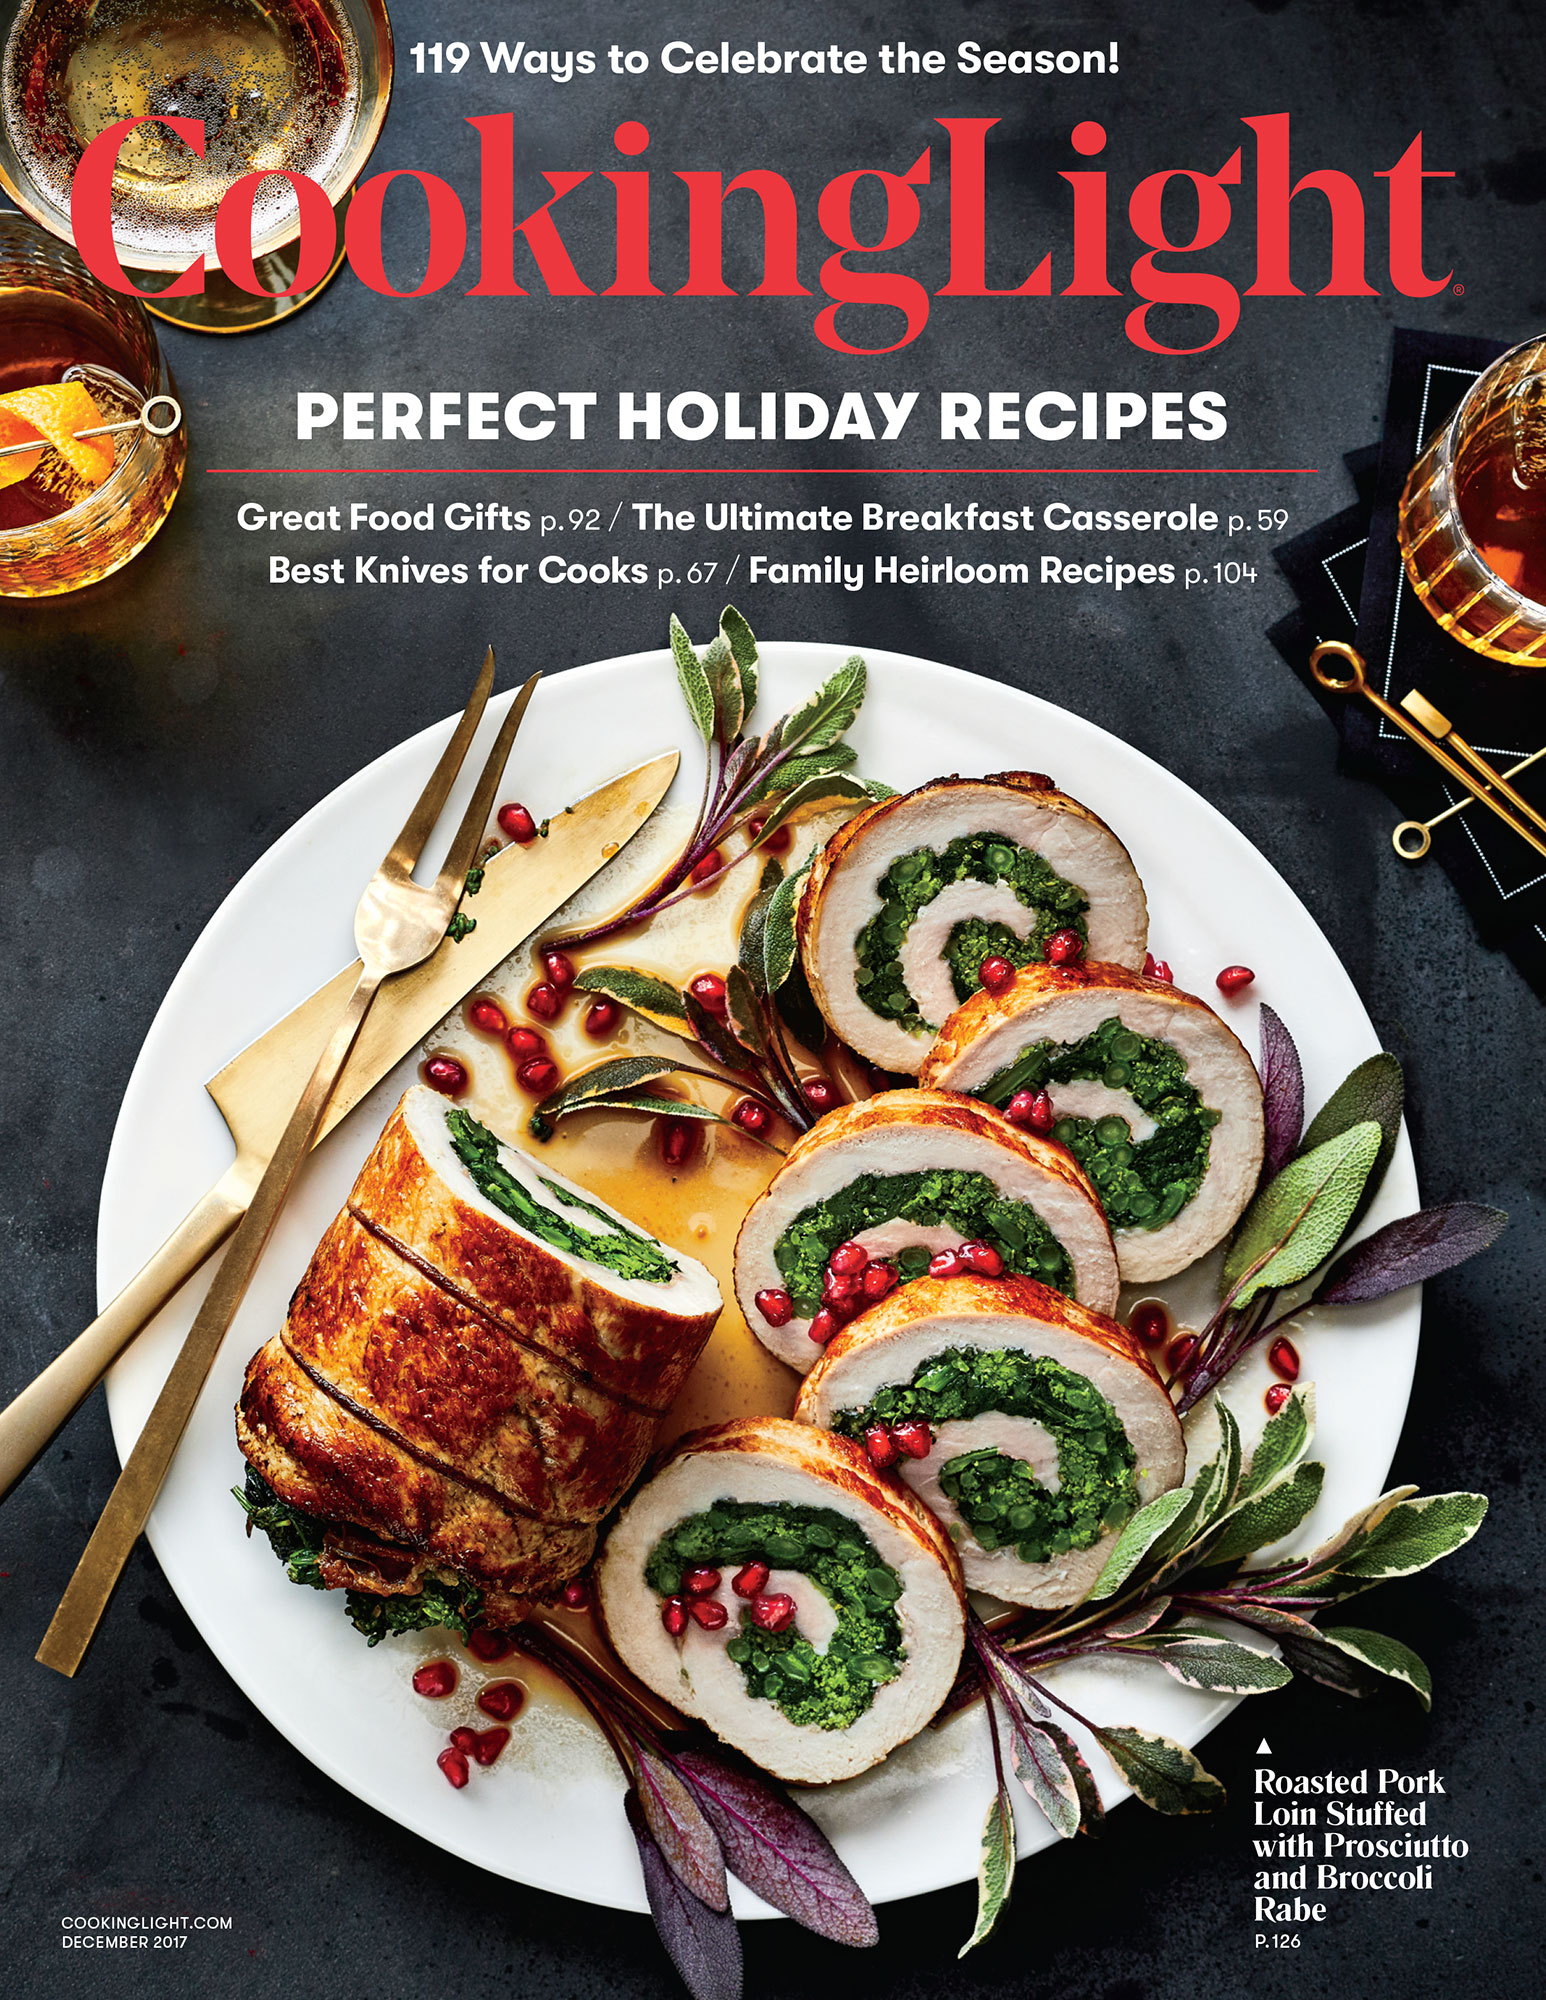 Cooking Light December 2017 Cover